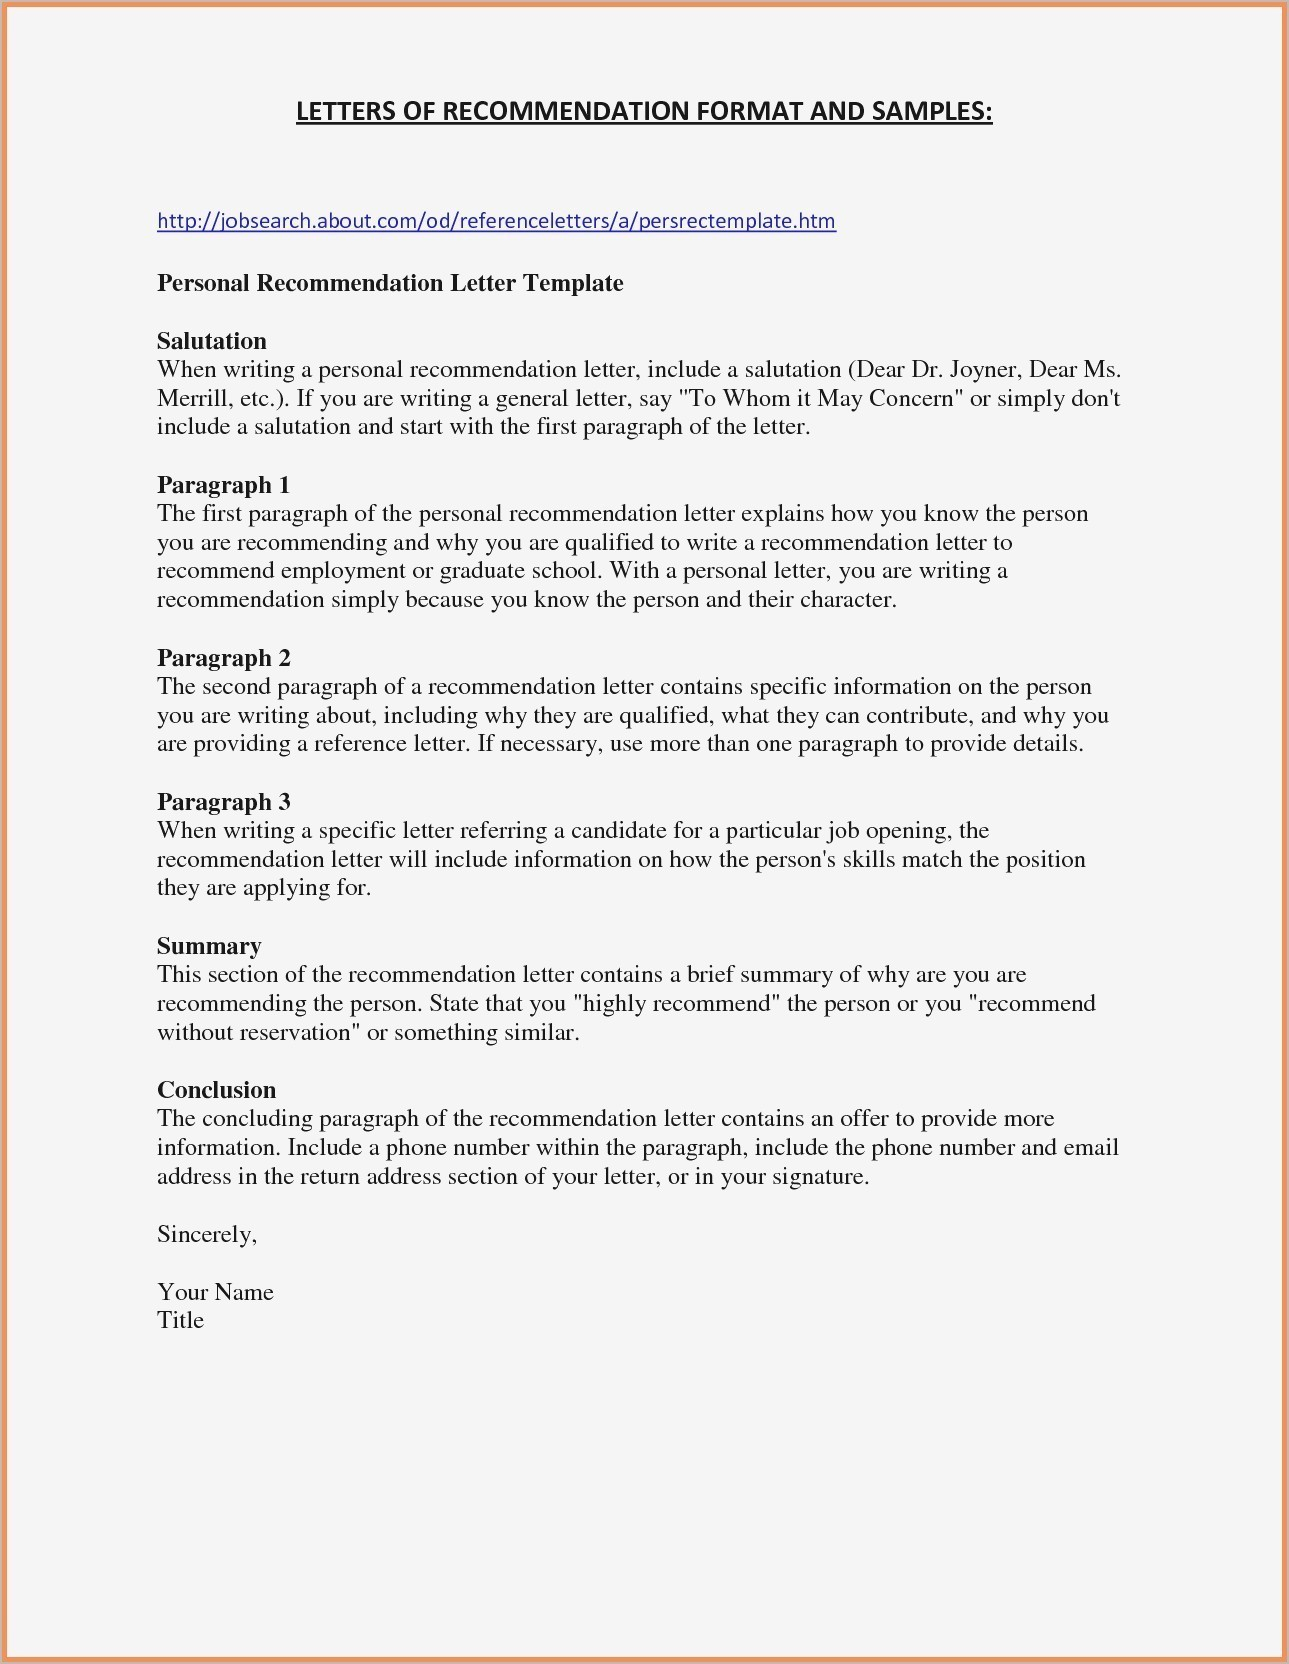 Basic Recommendation Letter Template - Job Re Mendation Letter Samples Valid Sample Job Re Mendation